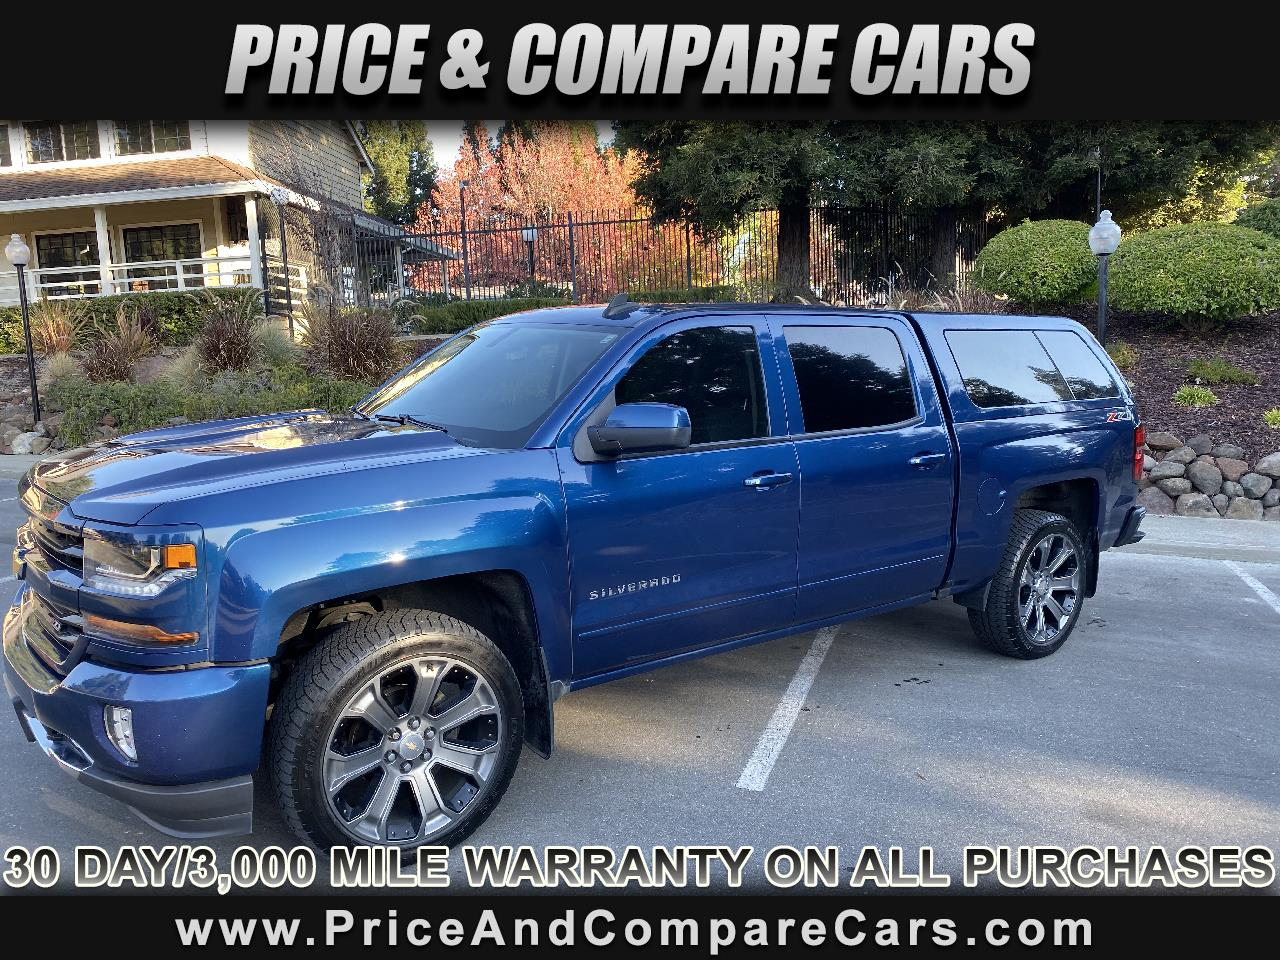 2017 Chevrolet Silverado 1500 LT Z71 CREW CAB 4X4 LEATHER NAVIGATION HEATED SEAT